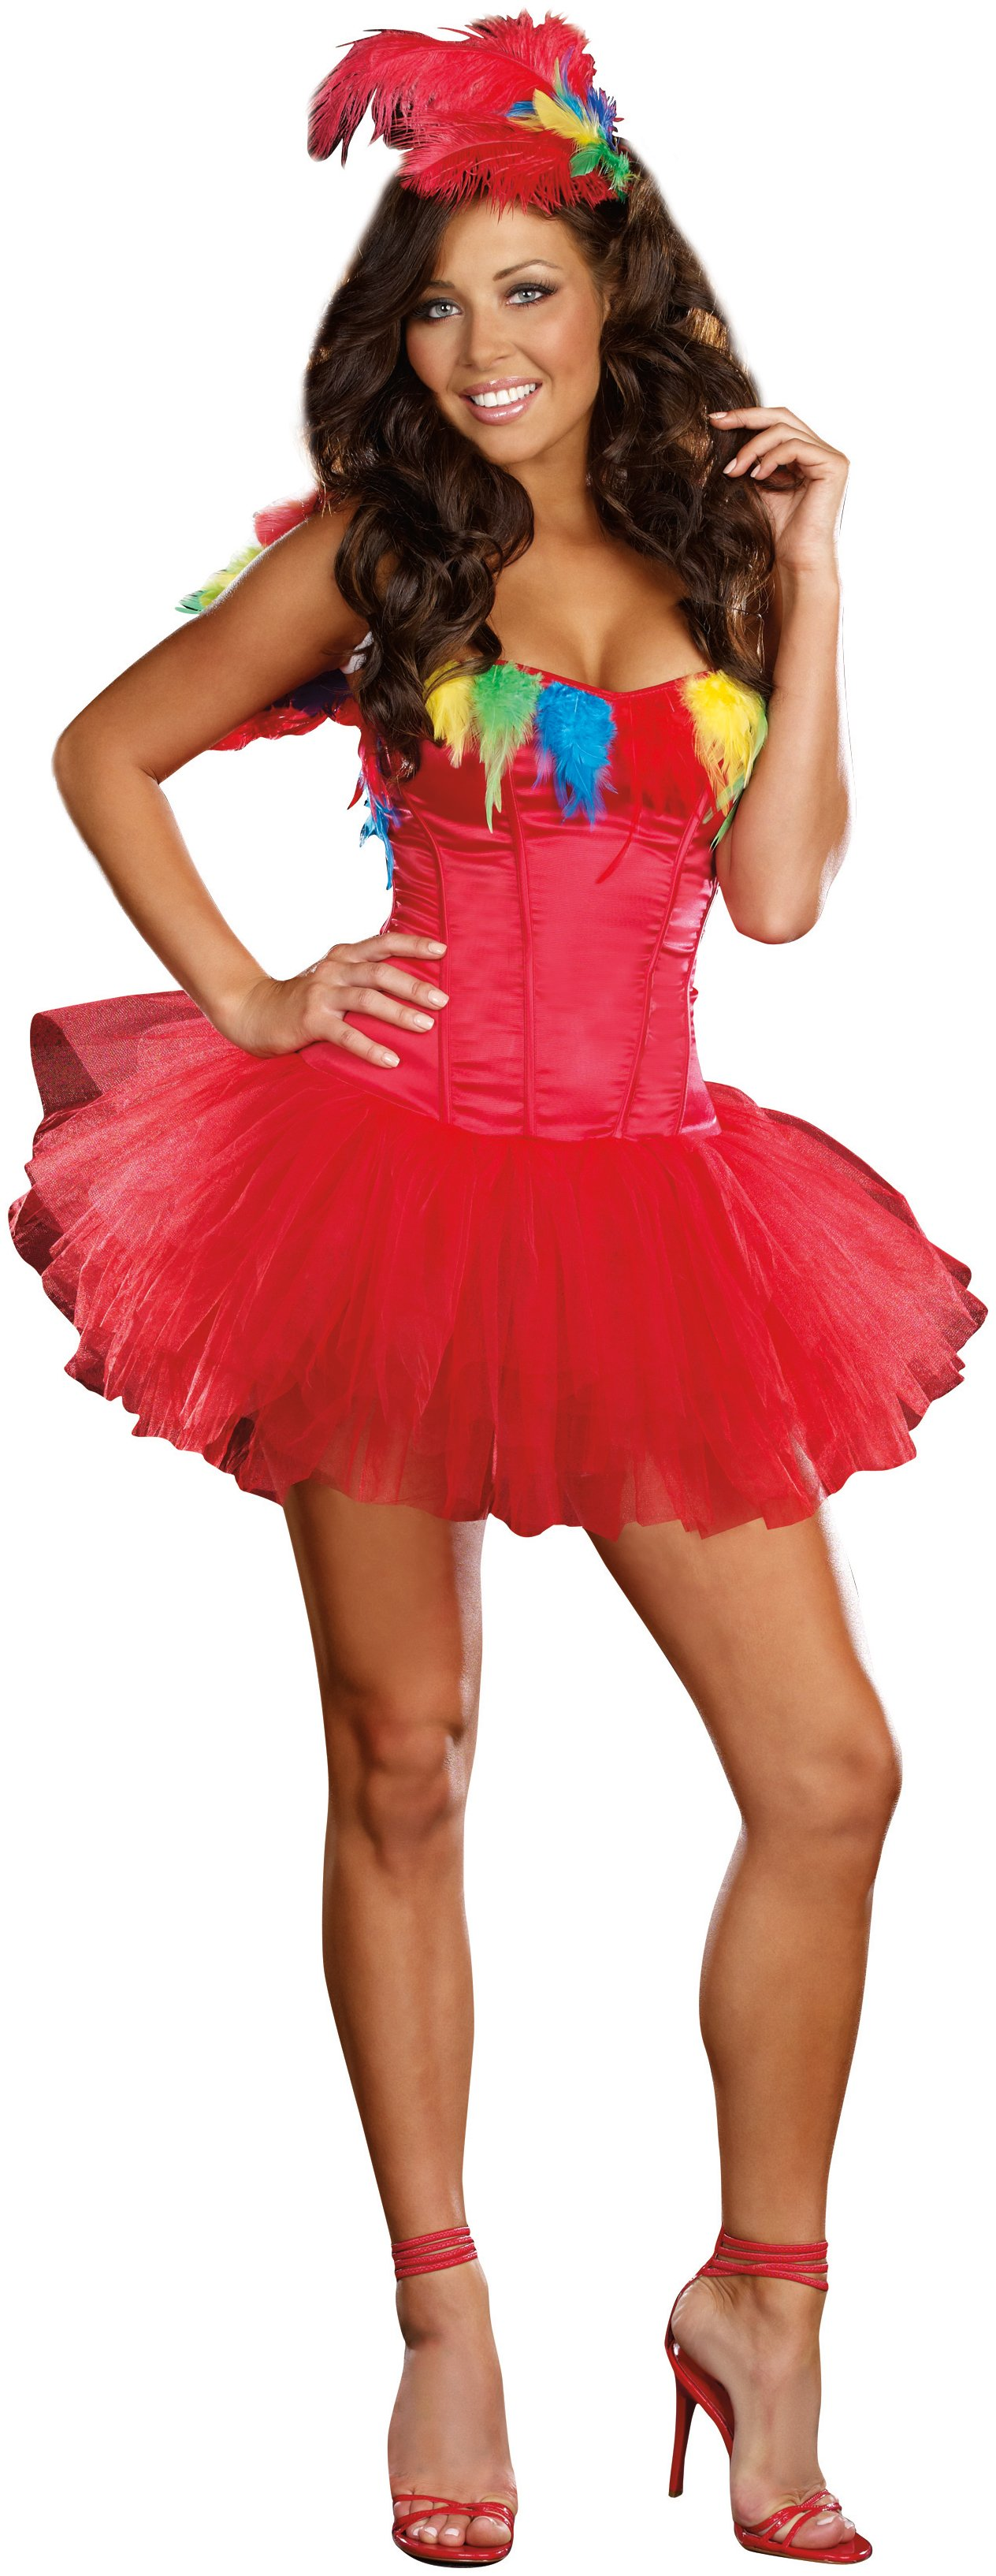 Parrot Princess Adult Costume